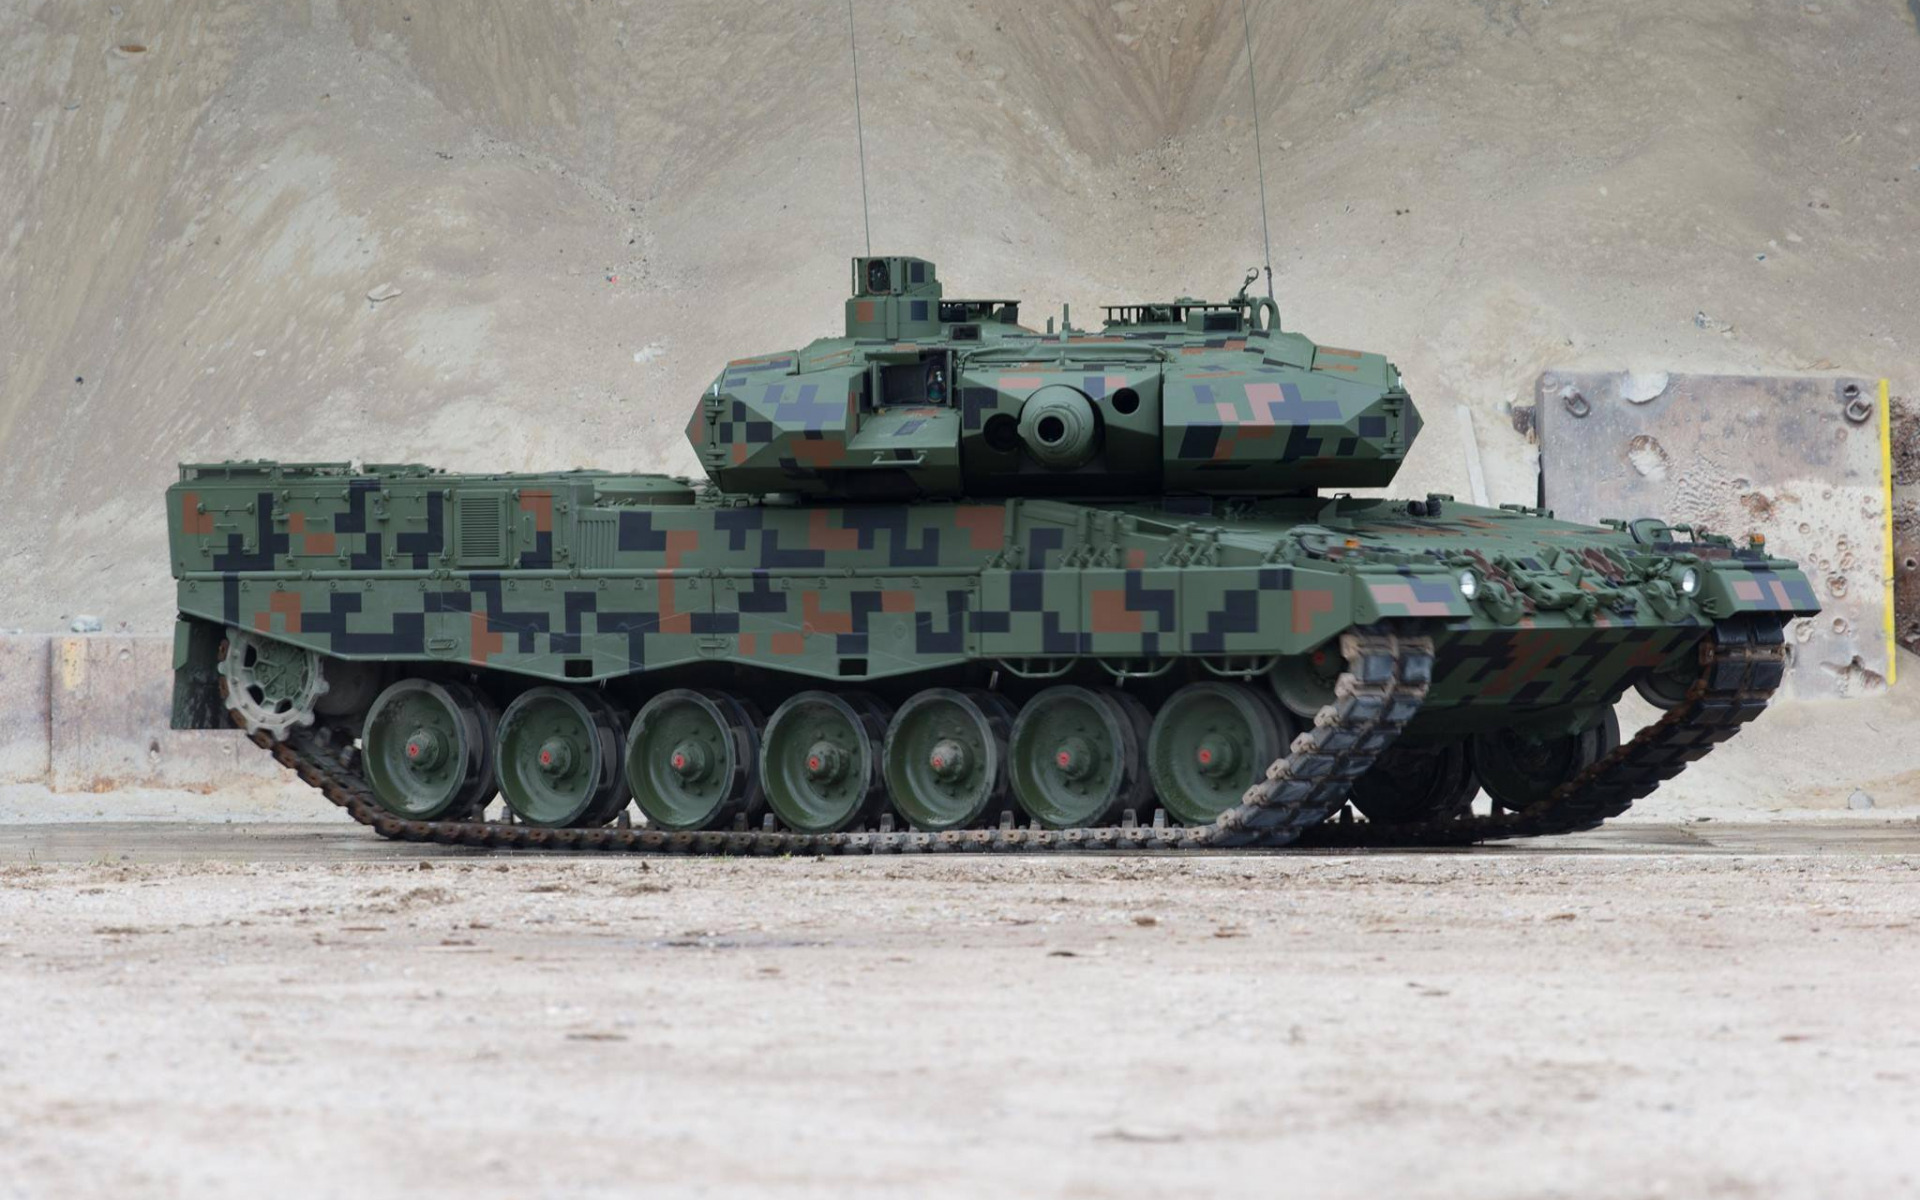 Leopard 2PL, Polish battle tank, the army of Poland, camouflage green, tanks, Main Battle Tank, Poland